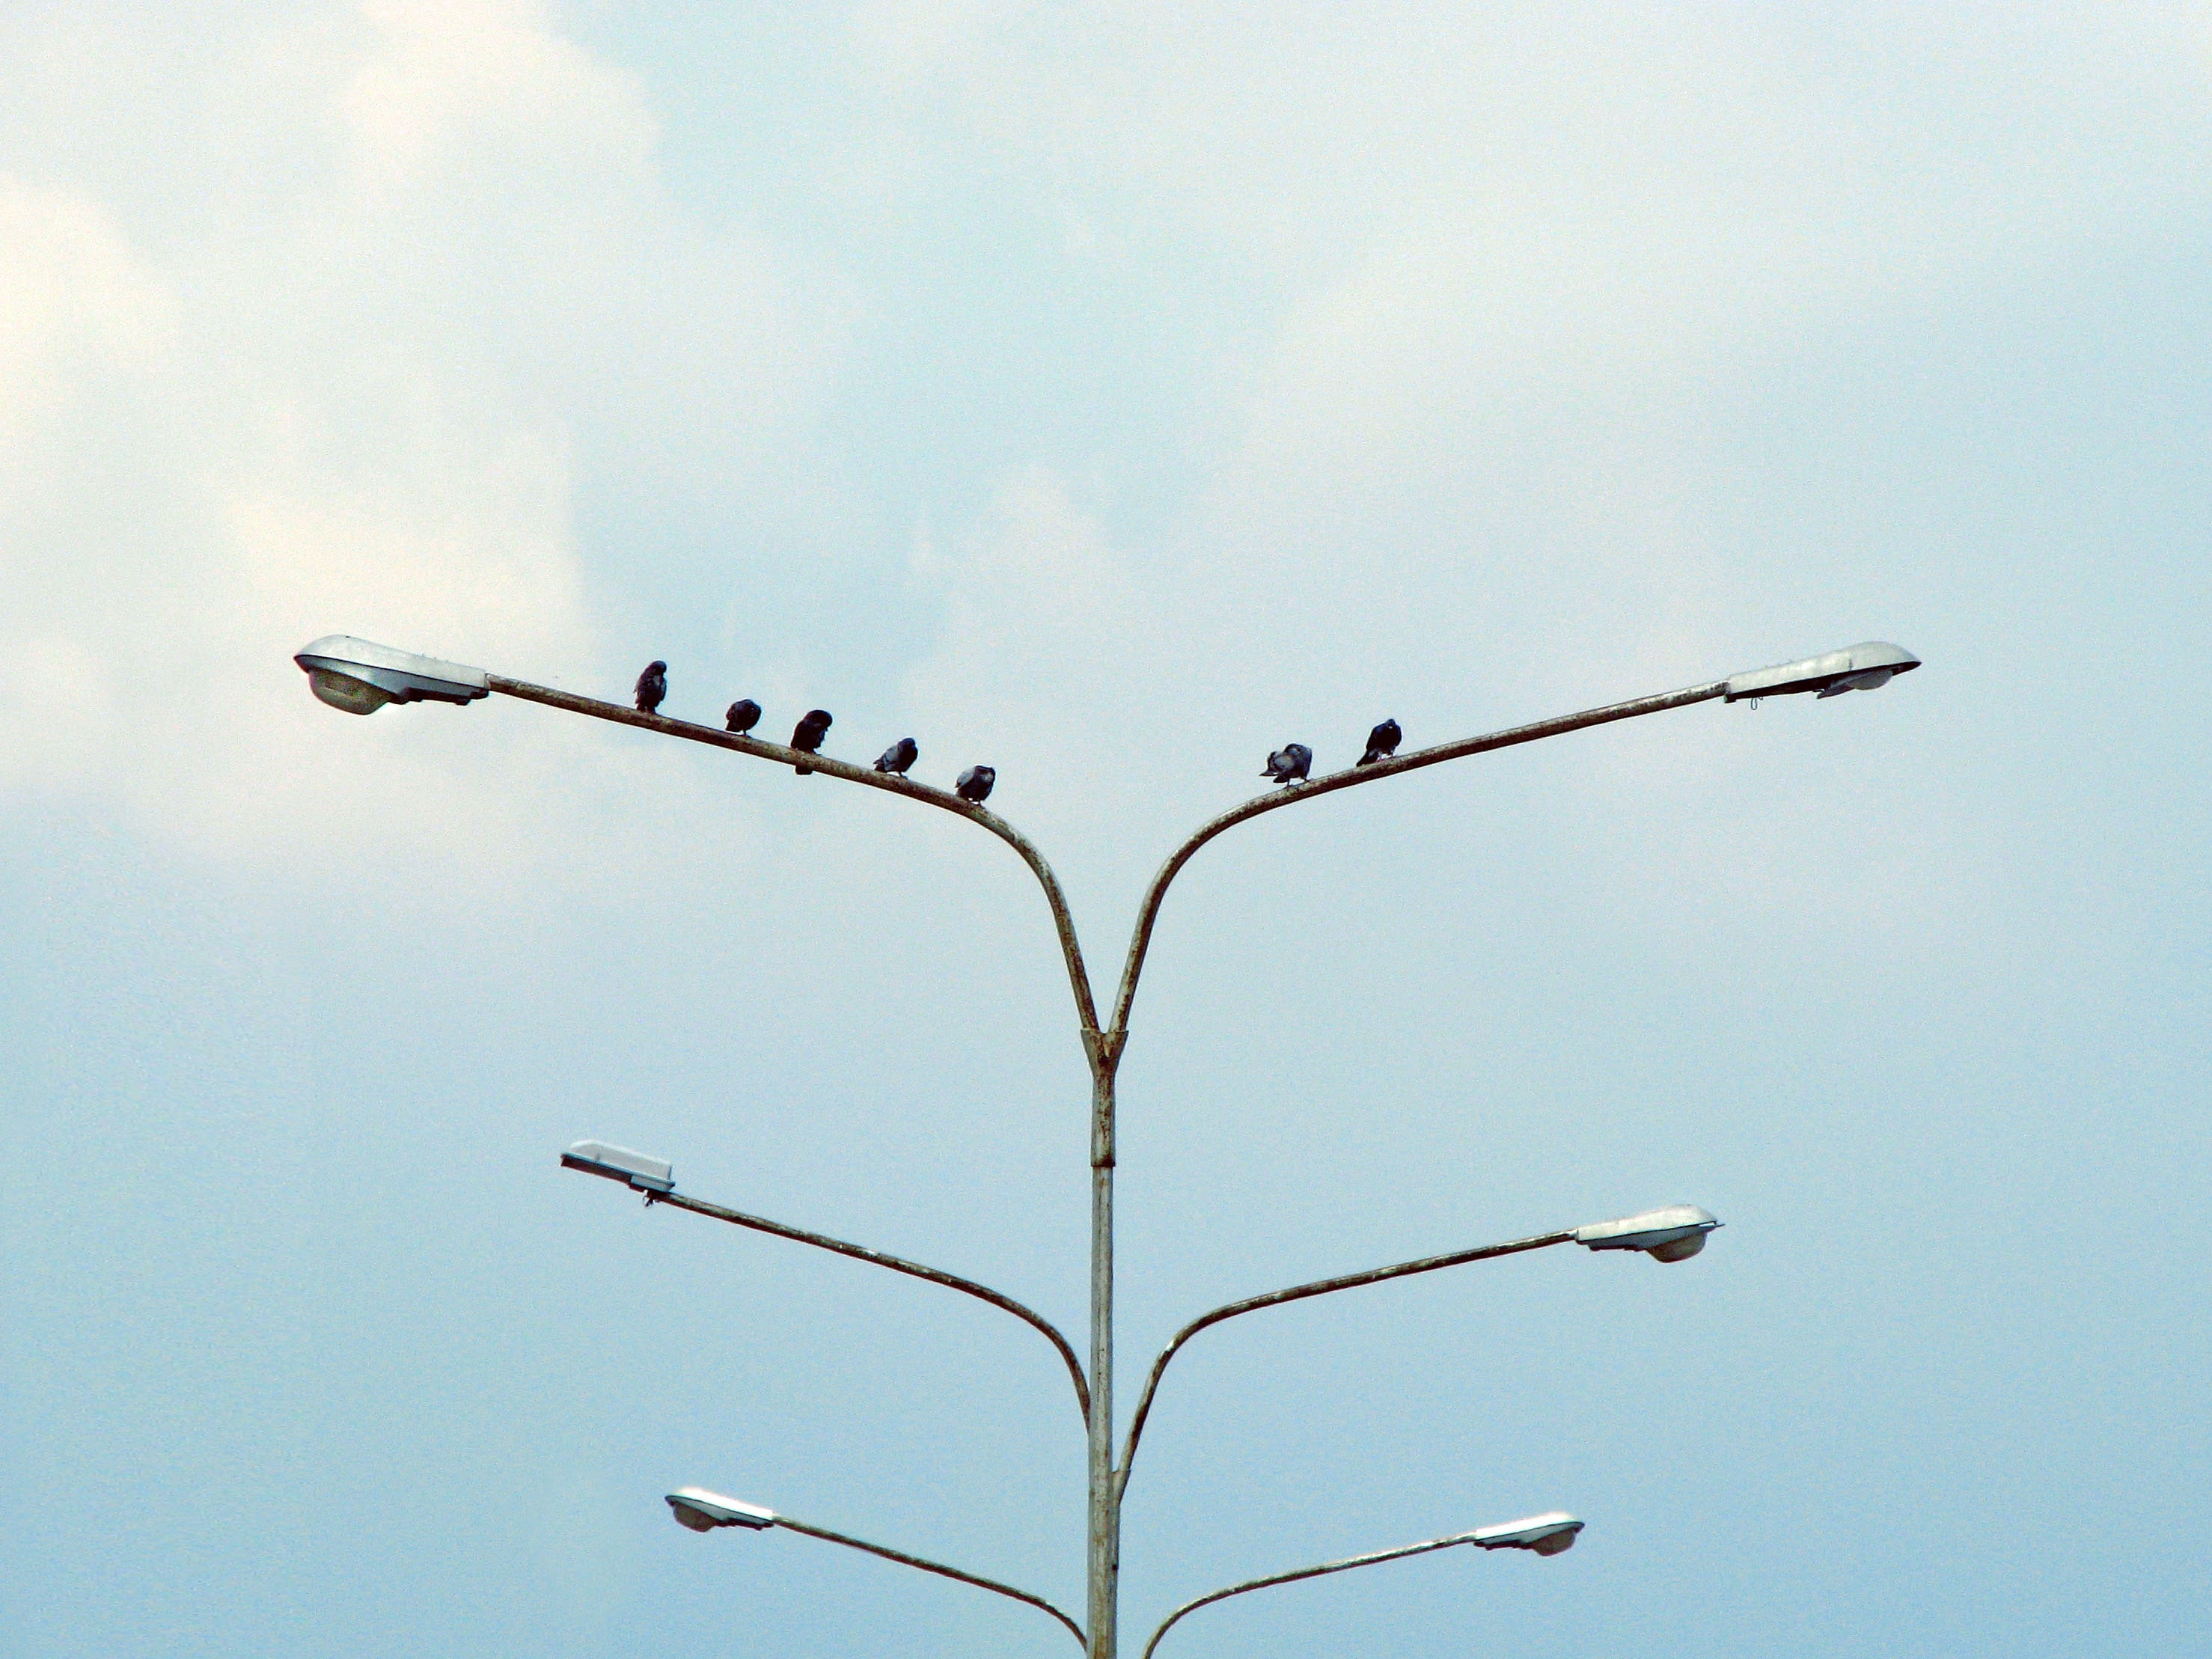 six black birds perching on street lamp